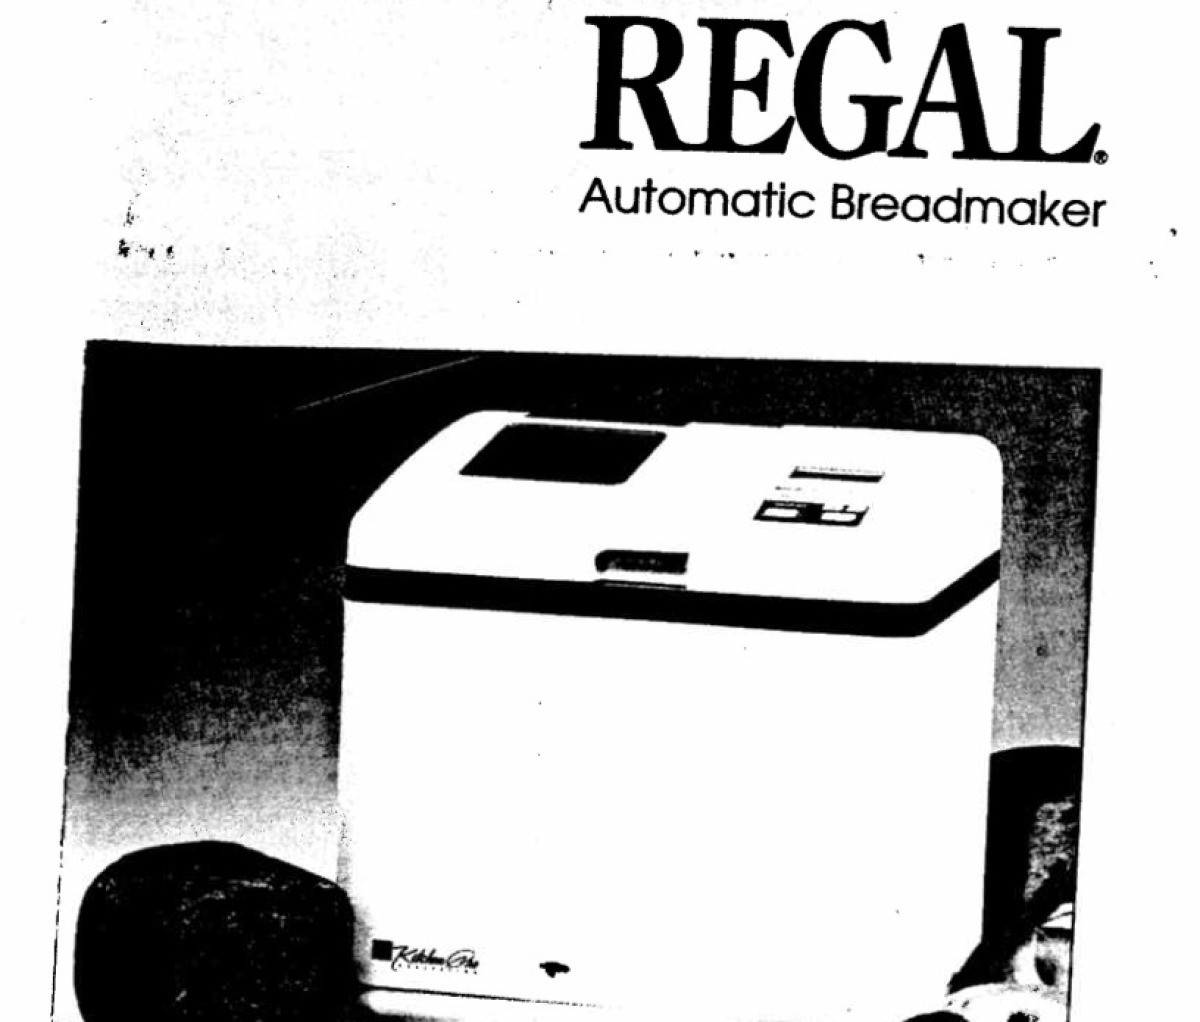 Regal Bread Maker Instruction Manuals and Recipes | ThriftyFun